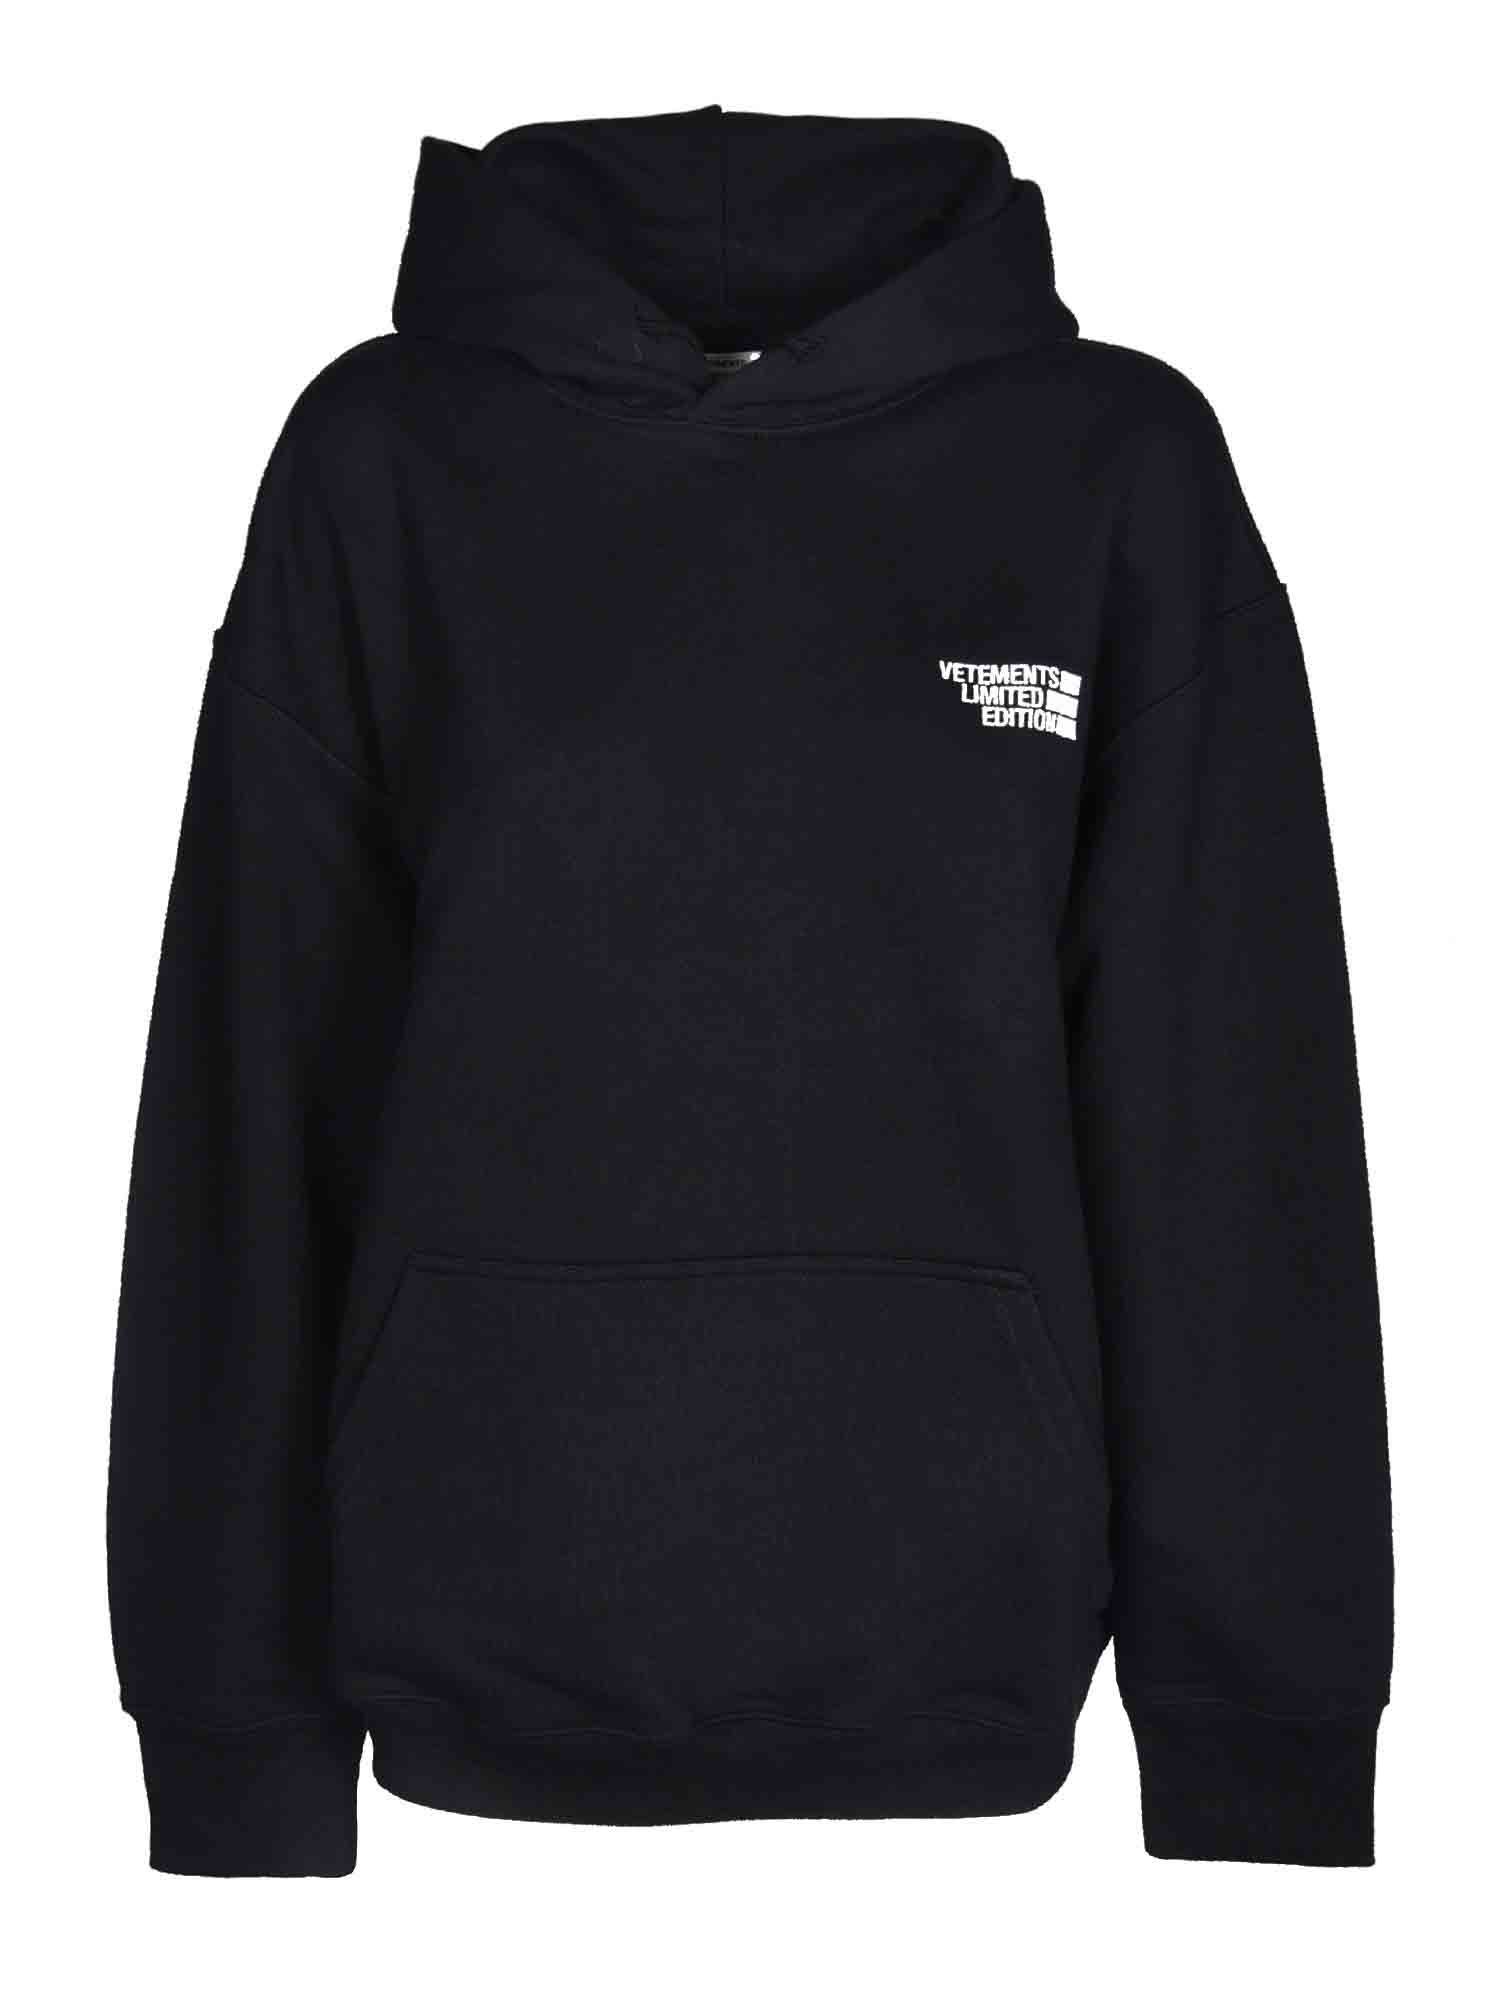 Vetements LOGO HOODIE IN BLACK